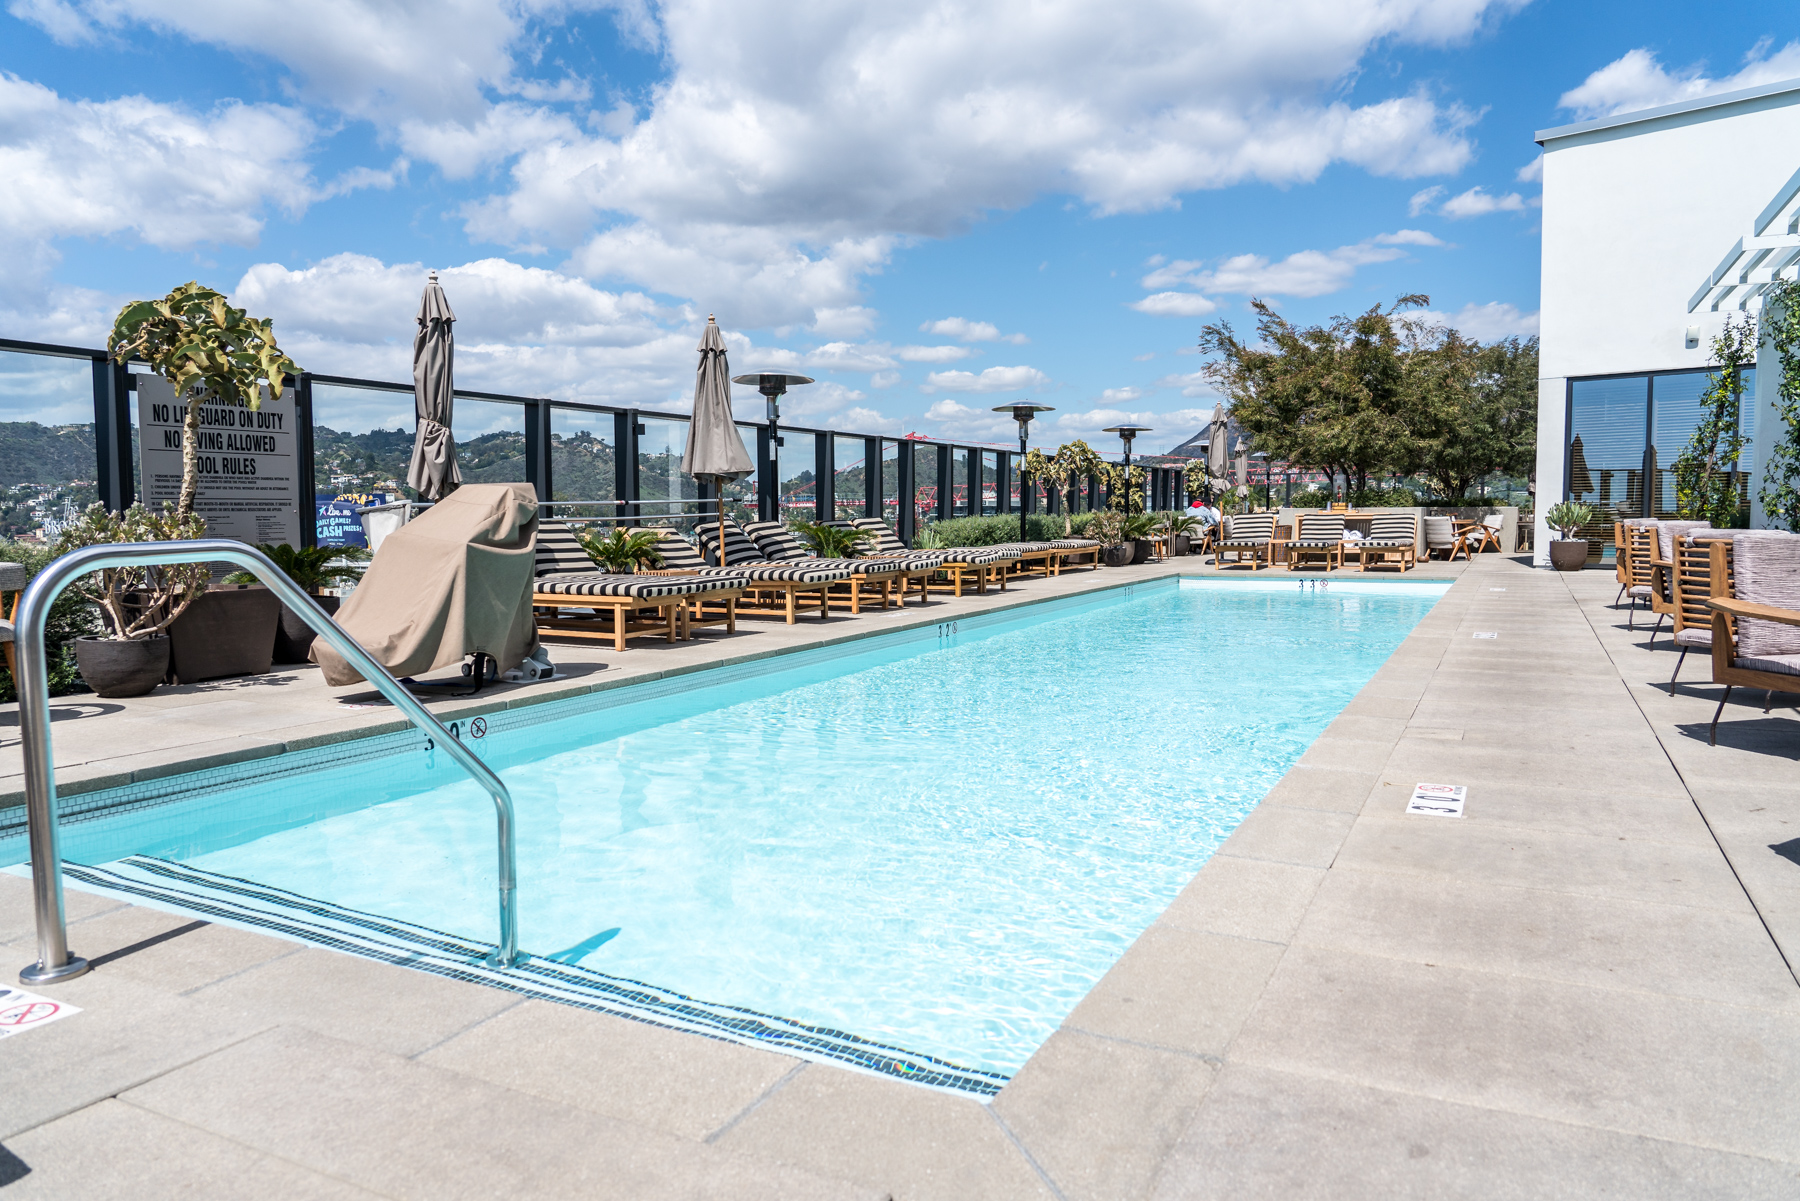 Pool with a View,Filifera, Hollywood, CA - Brunchographers